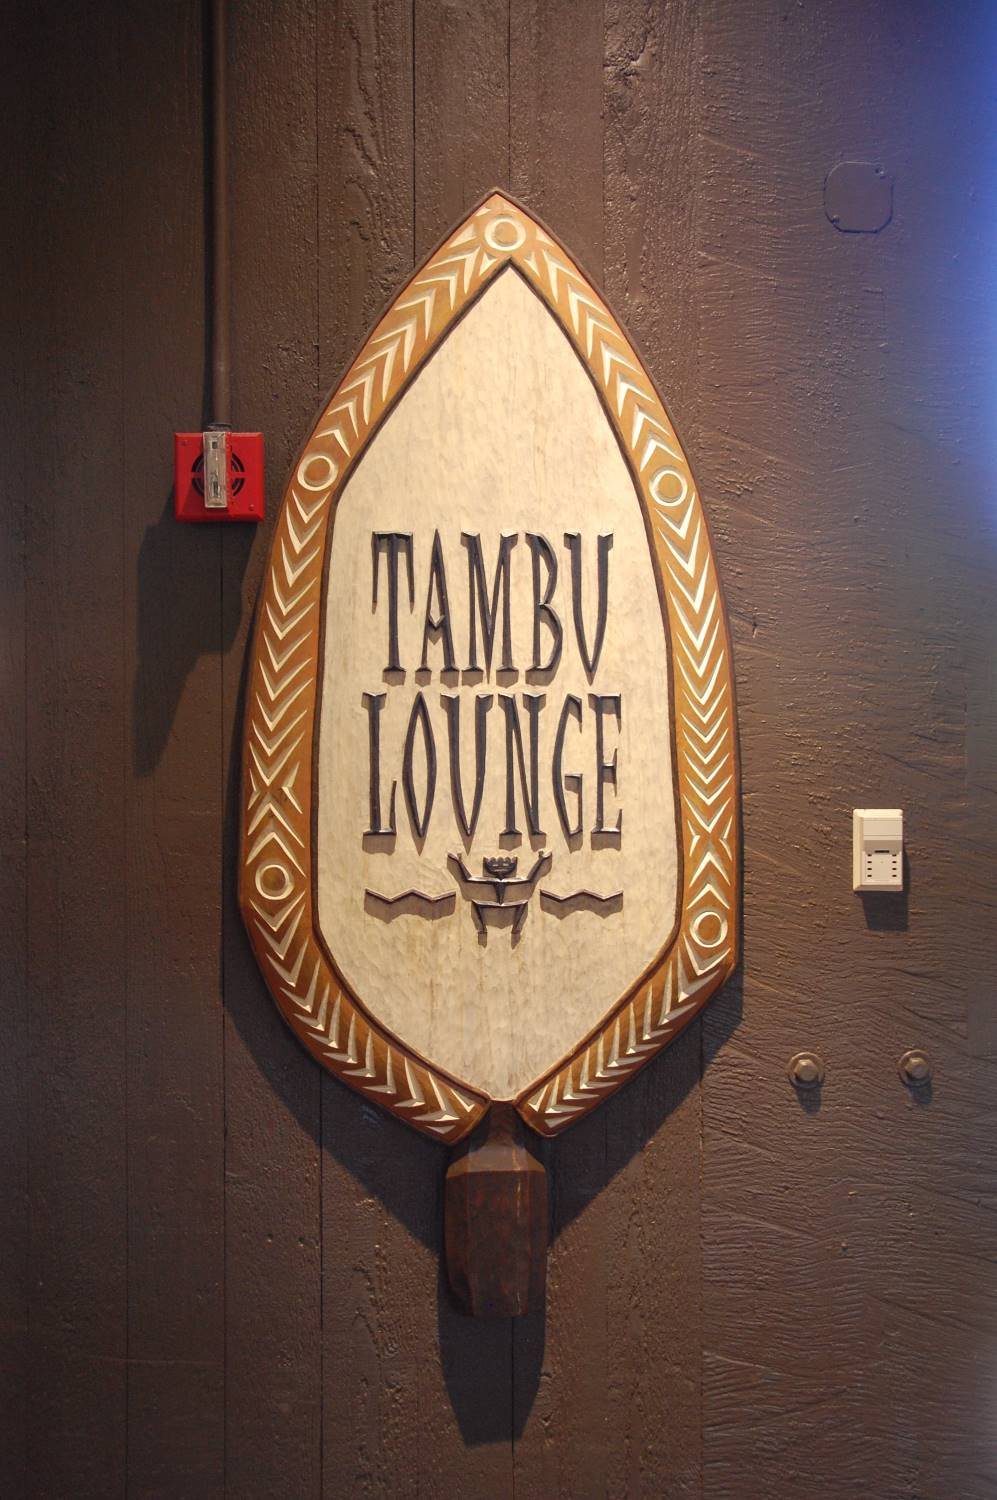 Tambu Lounge at Disney's Polynesian Village Resort & Villas - Disney World, Florida.